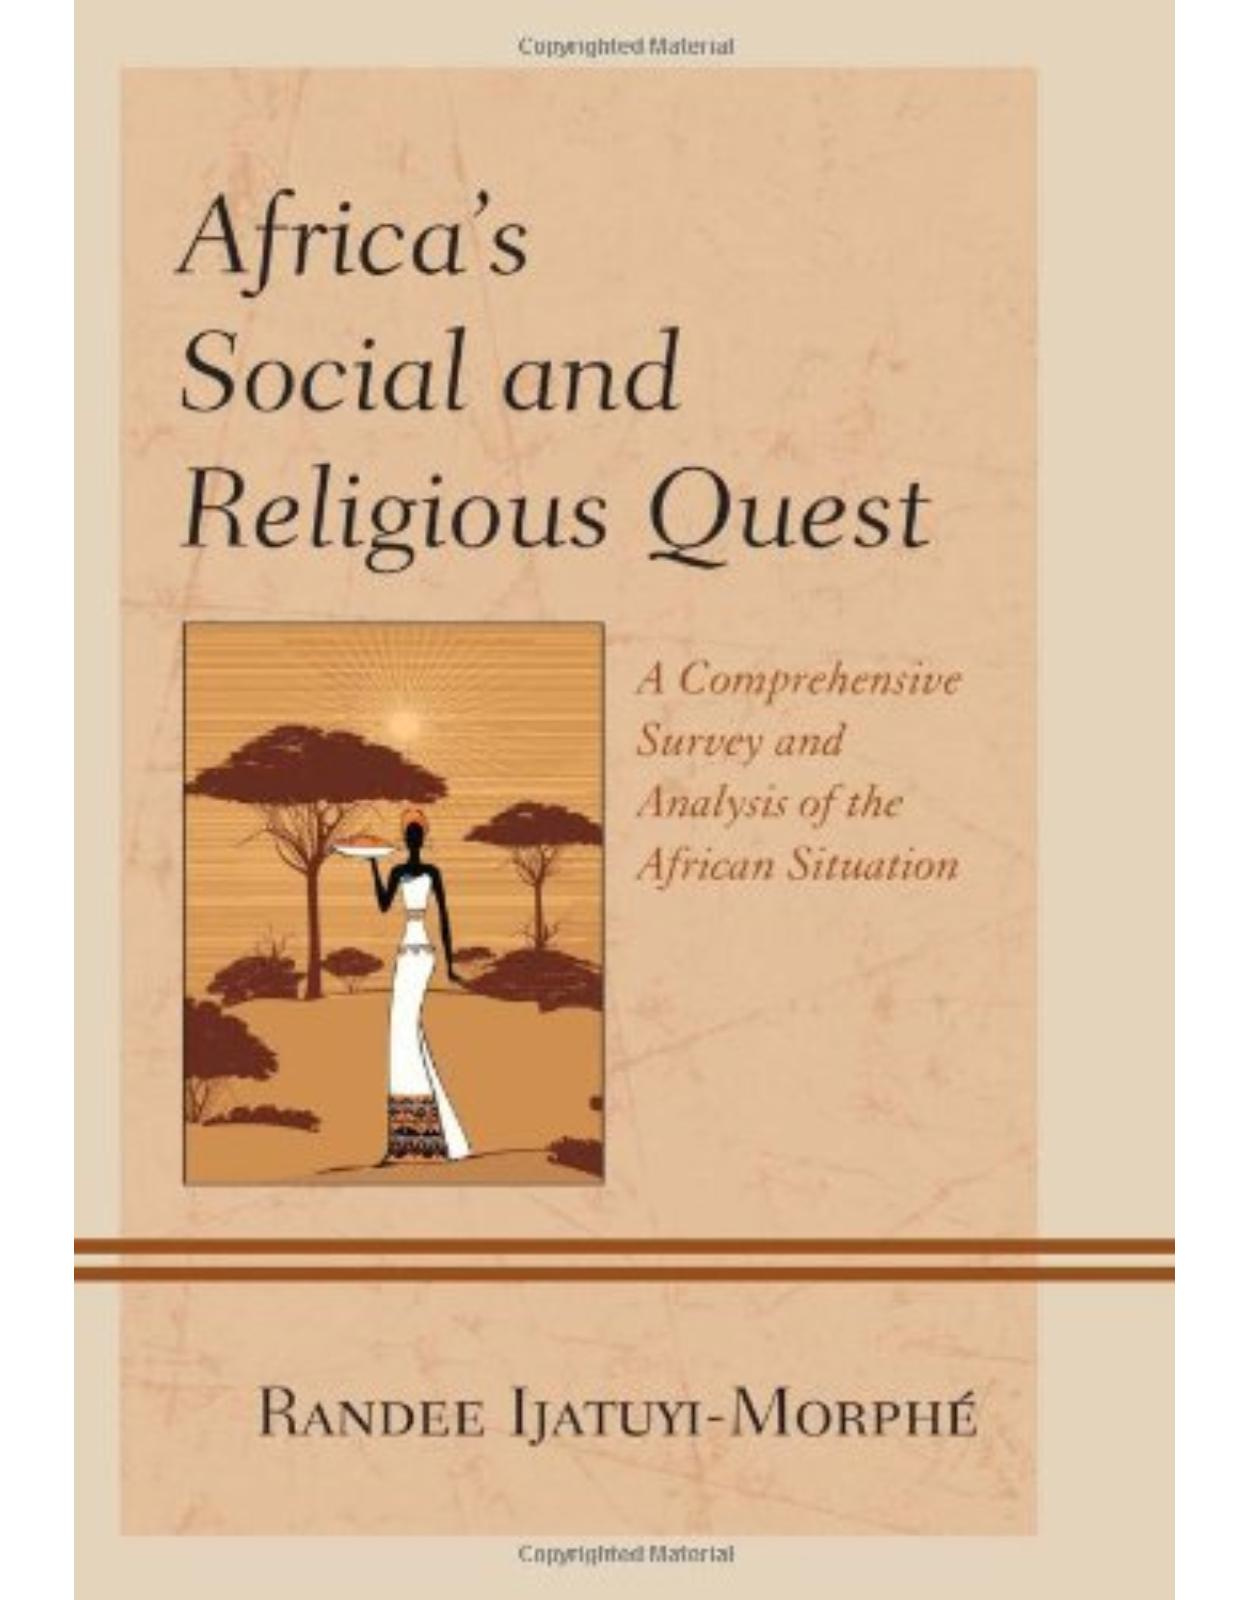 AfricaÂ's Social and Religious Quest: A Comprehensive Survey and Analysis of the African Situation